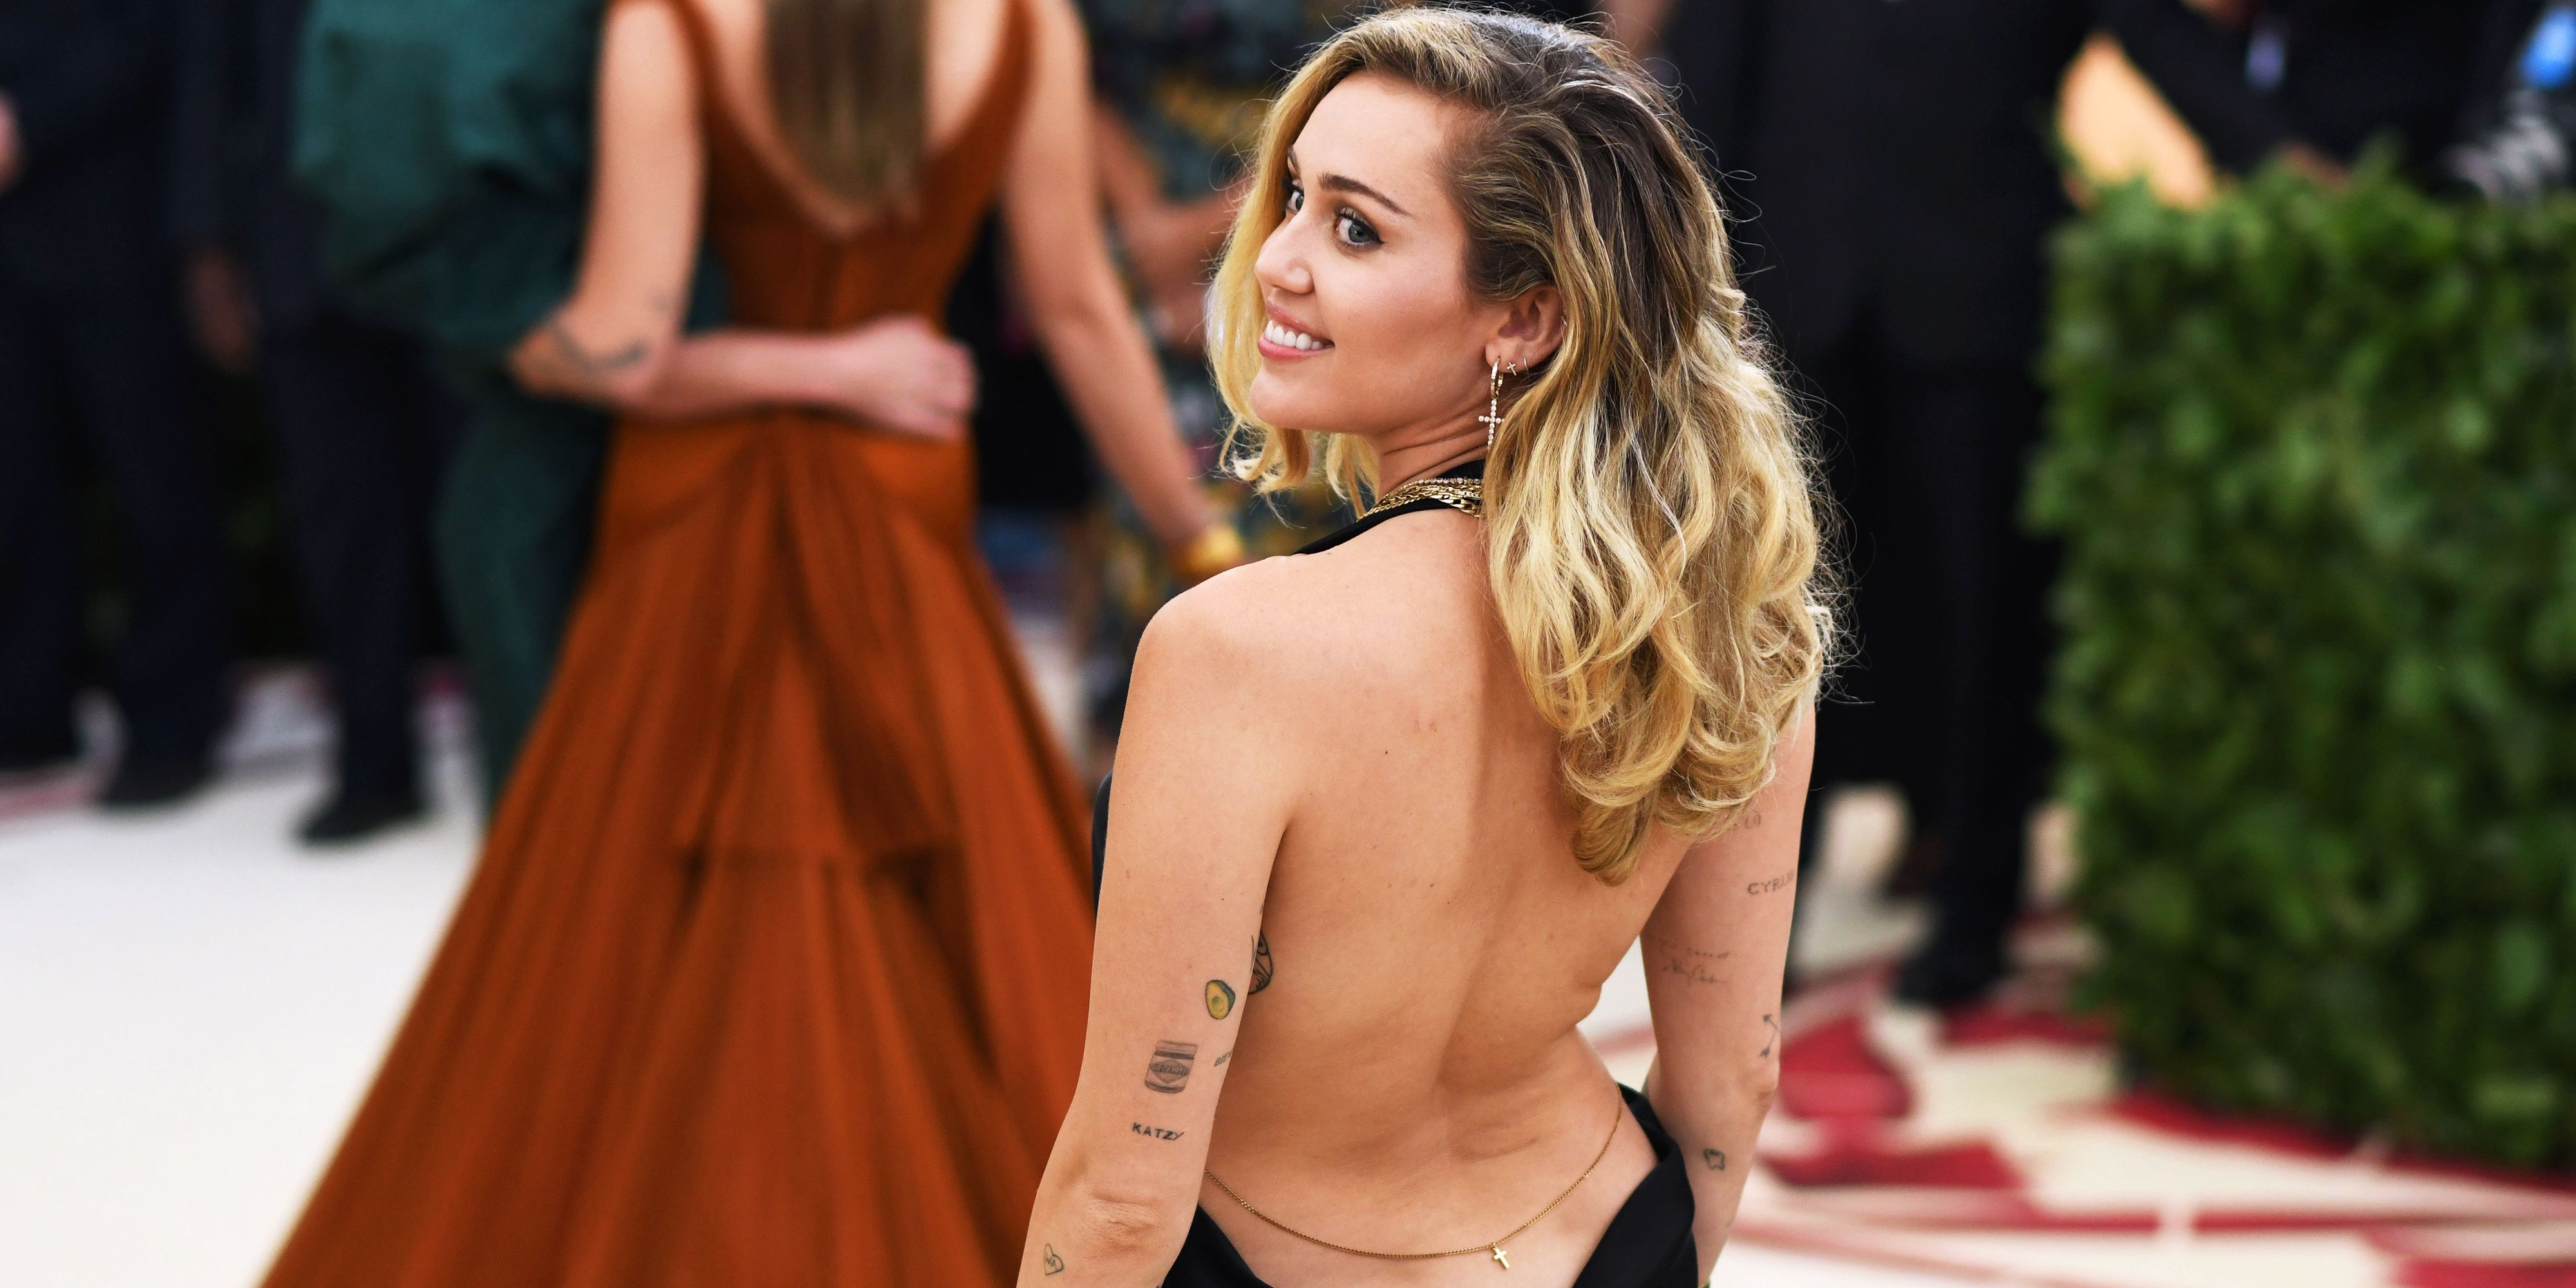 Miley Cyrus' Met Gala Dress Dips So Dangerously Low, There Is No End